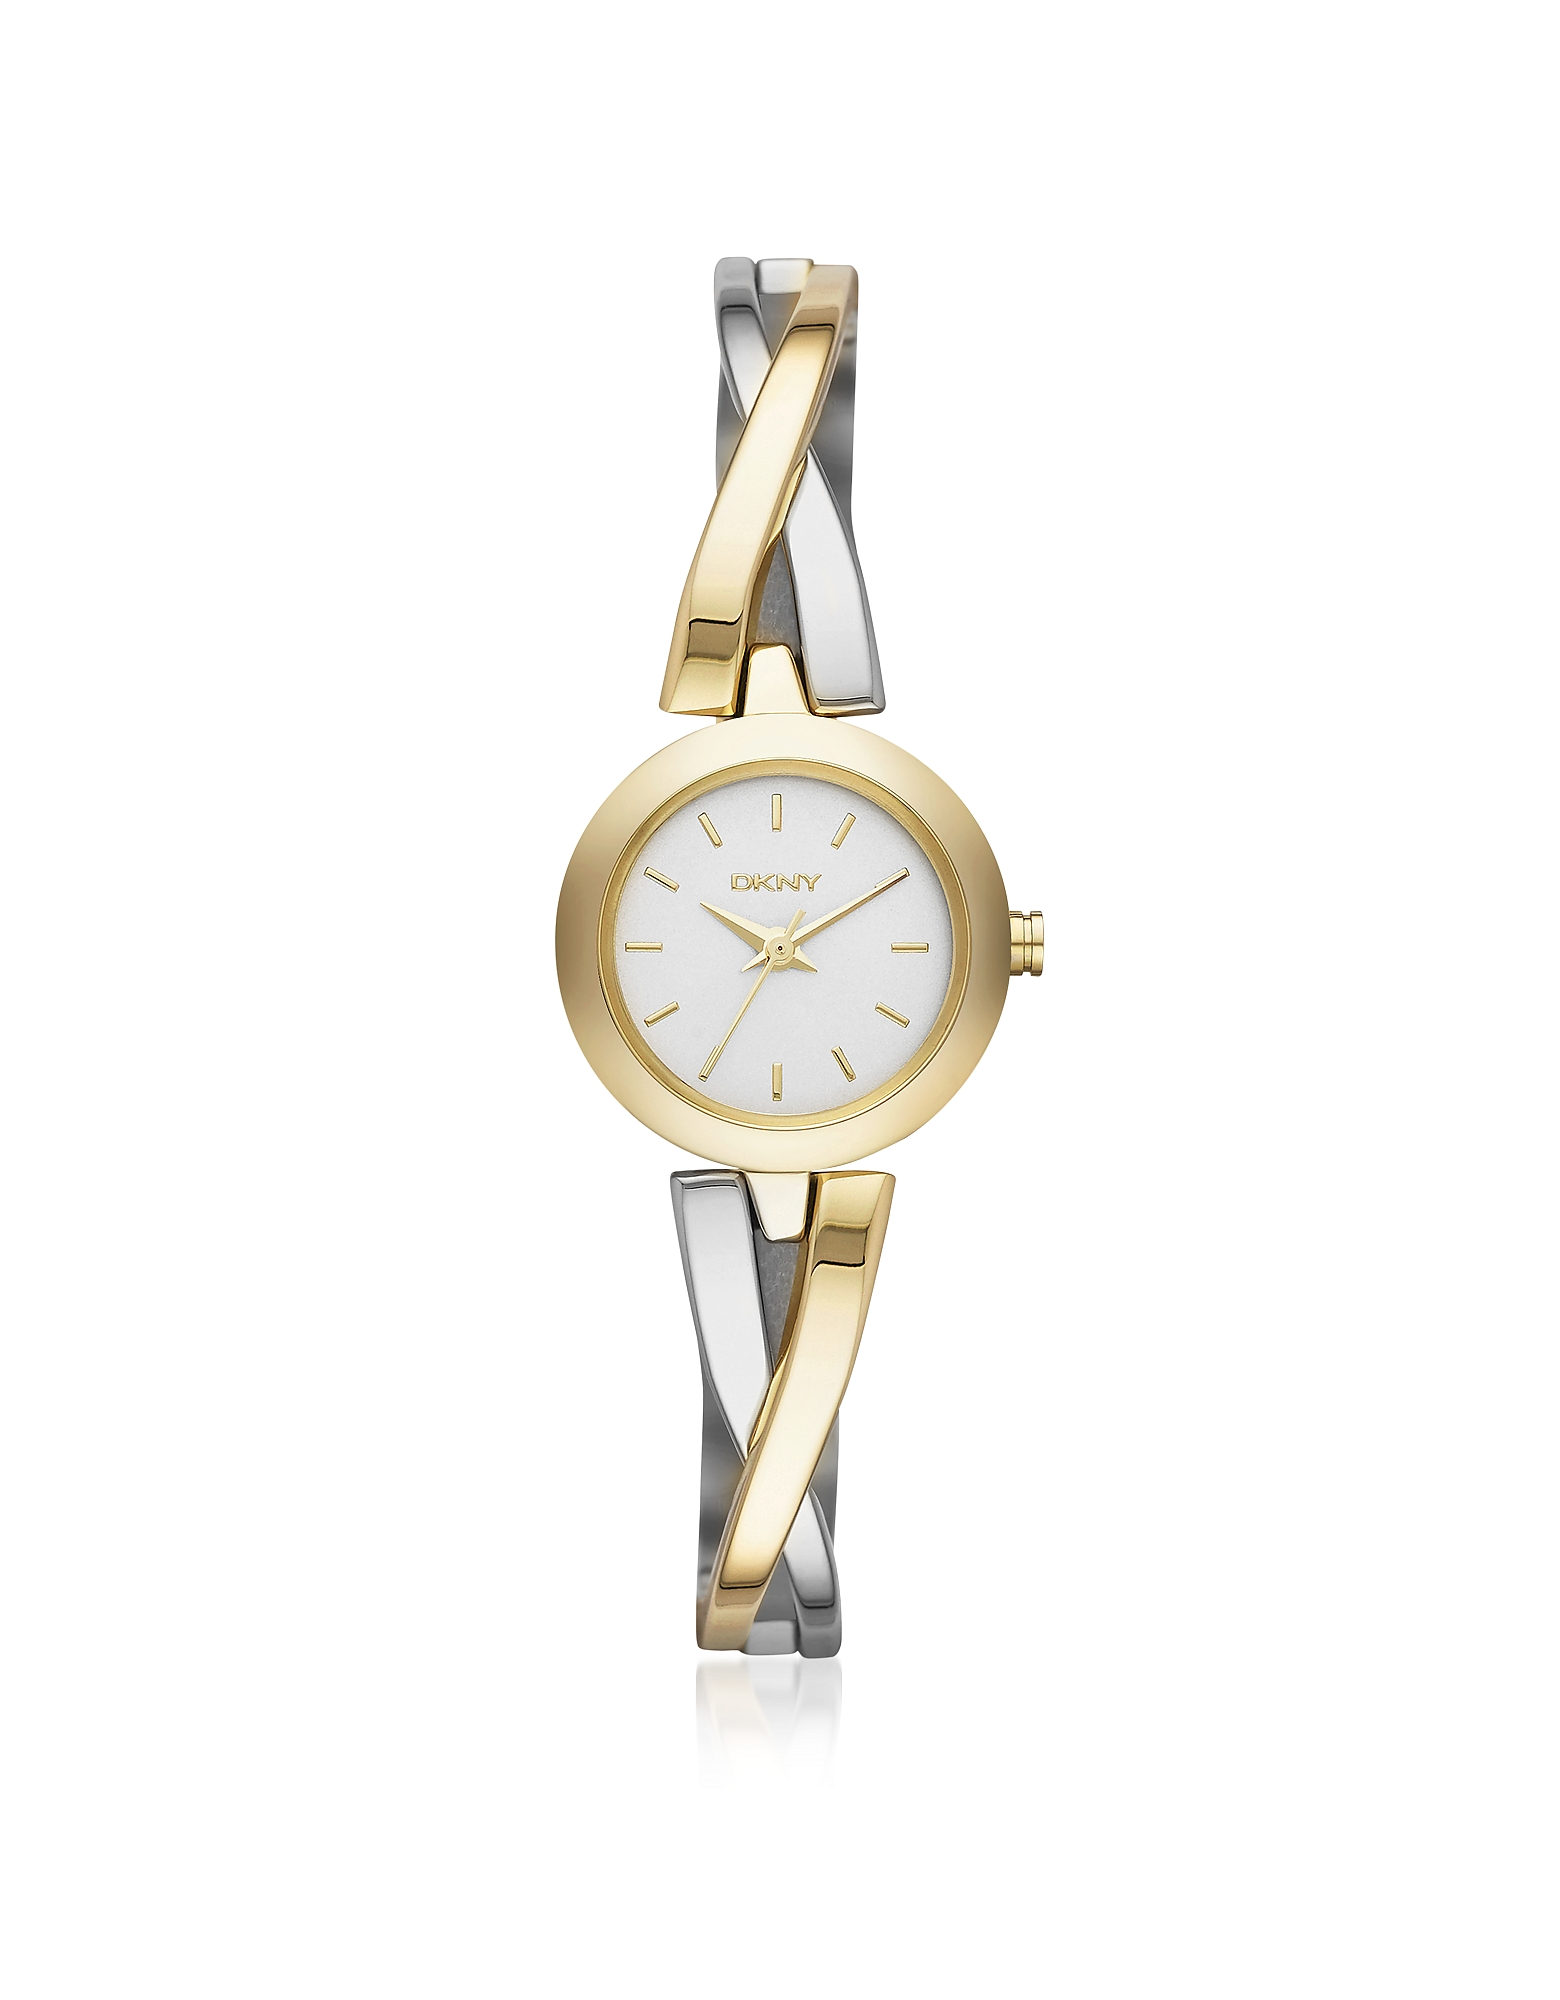 DKNY Women's Watches, Crosswalk Round Dial Two Tone Stainless Steel Women's Watch